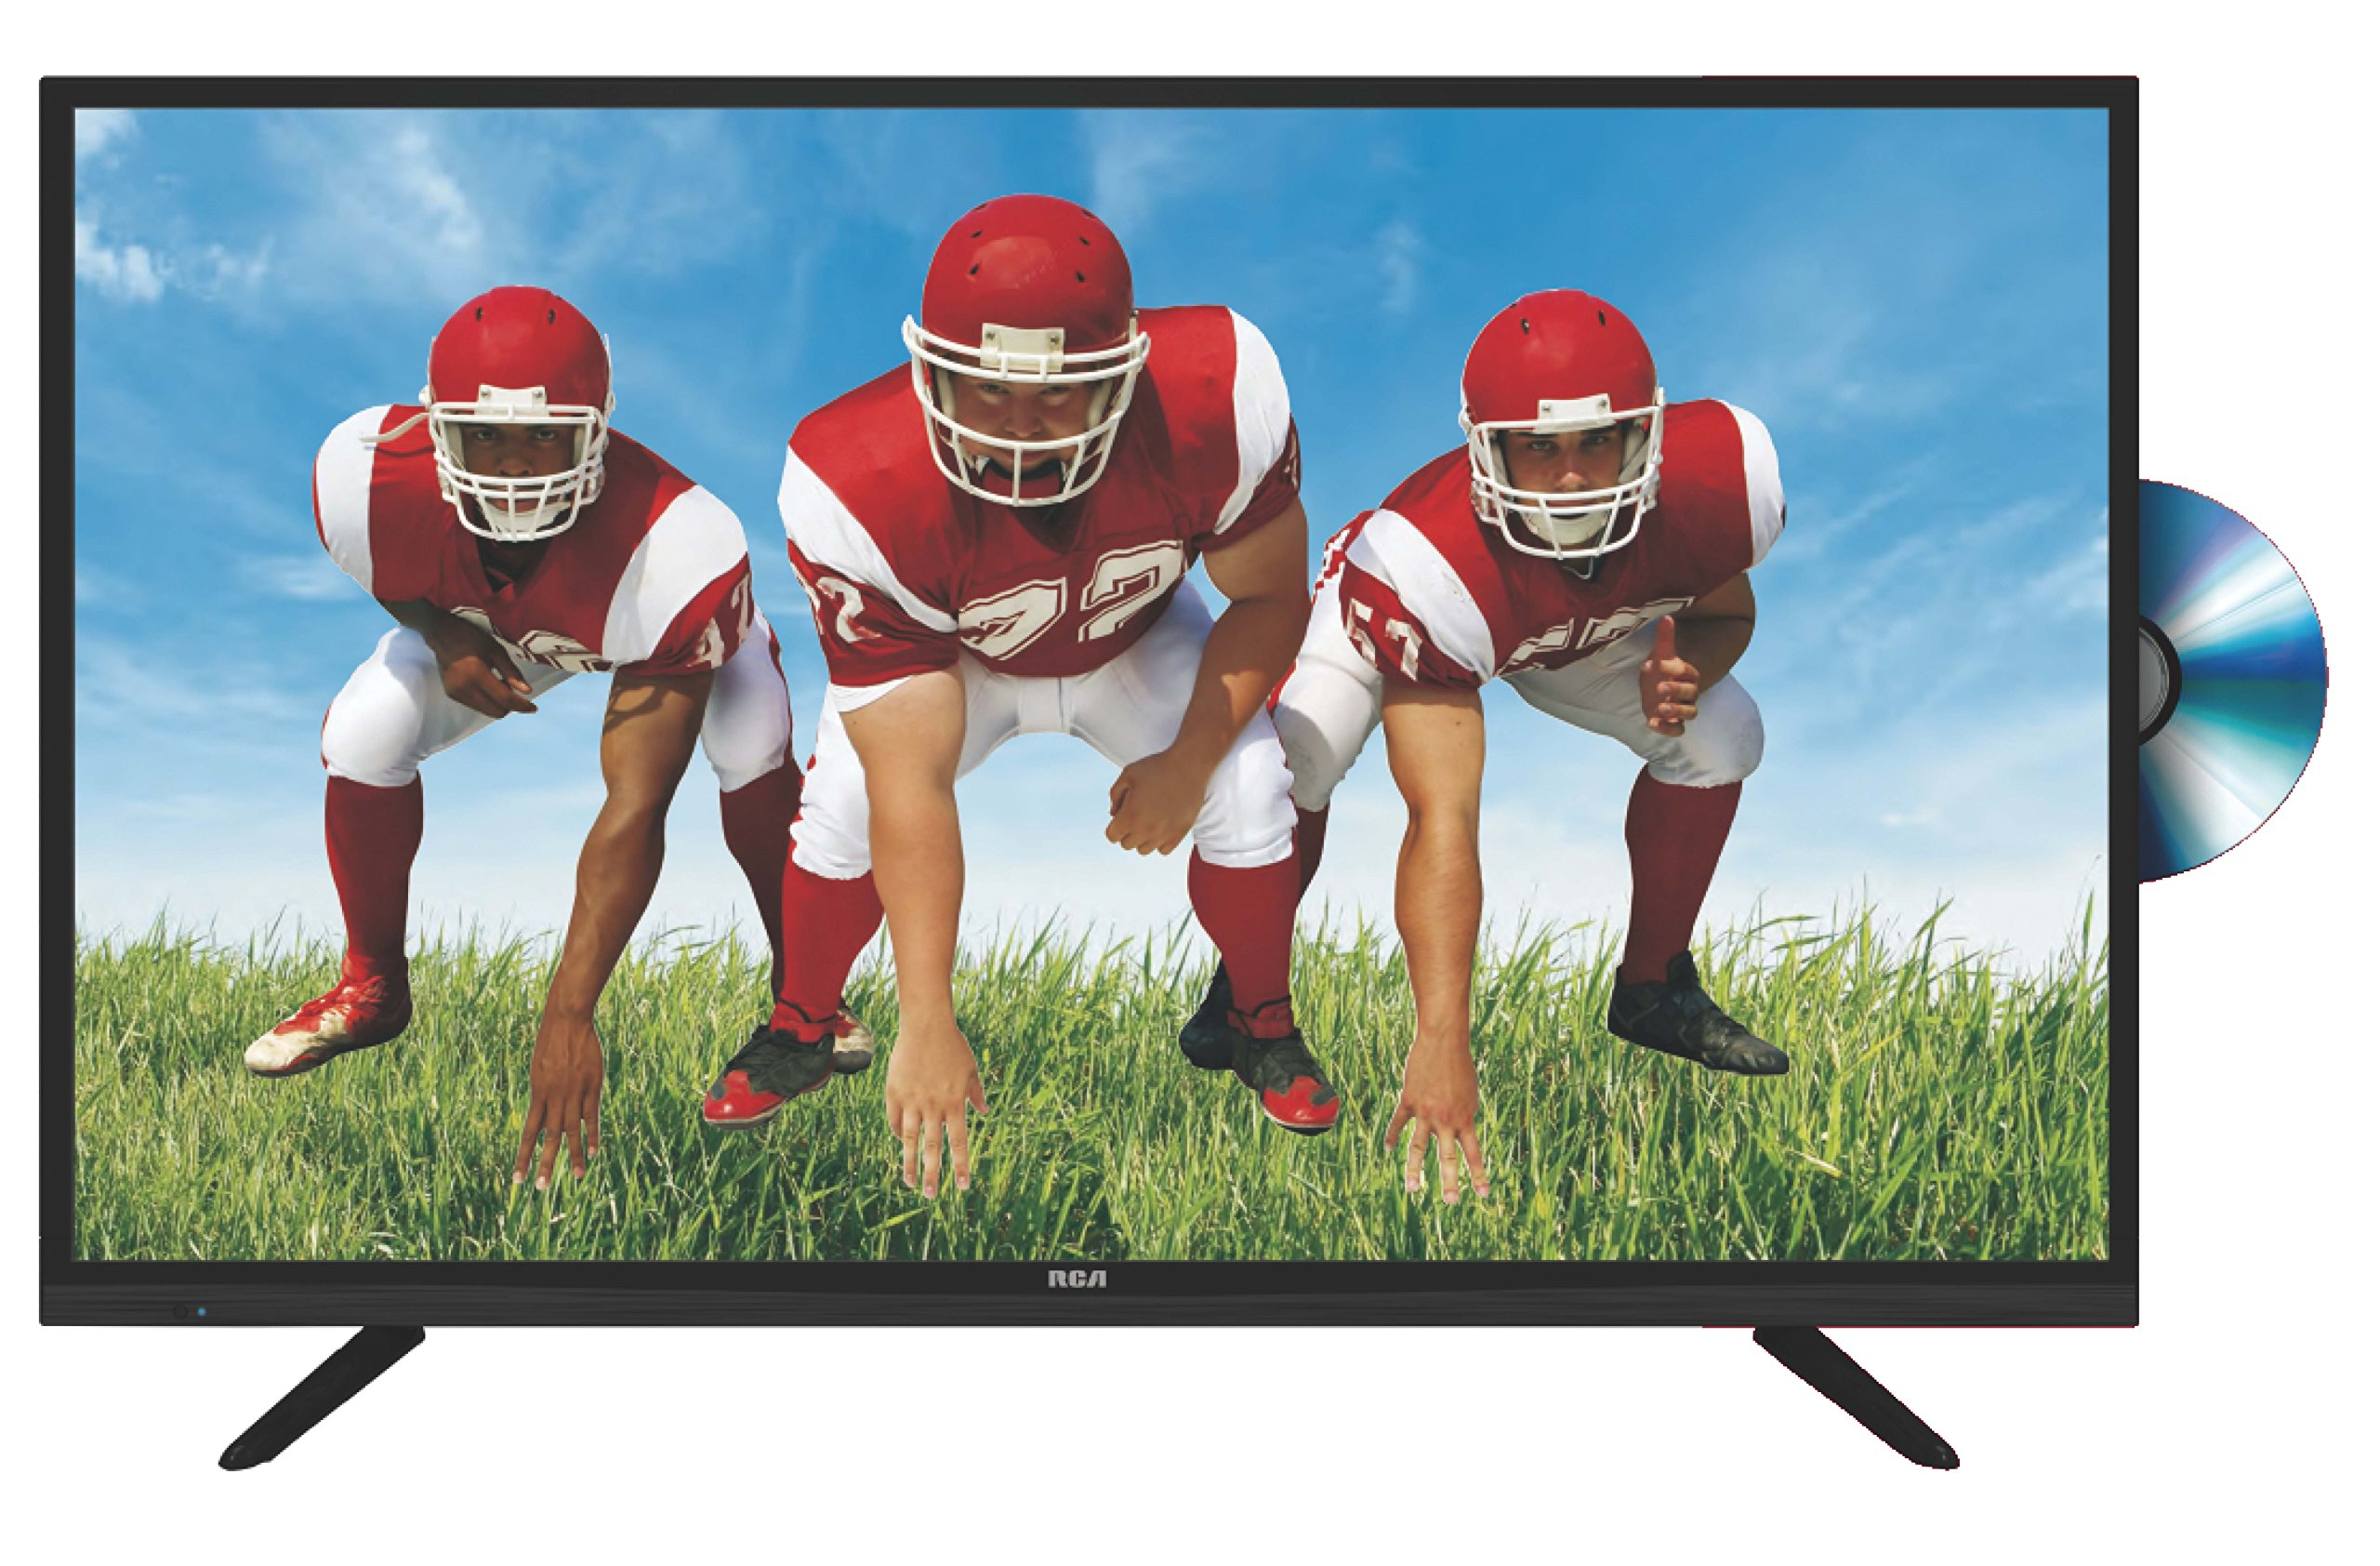 169a284d1455 RCA RLDEDV4001 40-Inch 1080p Full HD LED TV with Built-in DVD Player